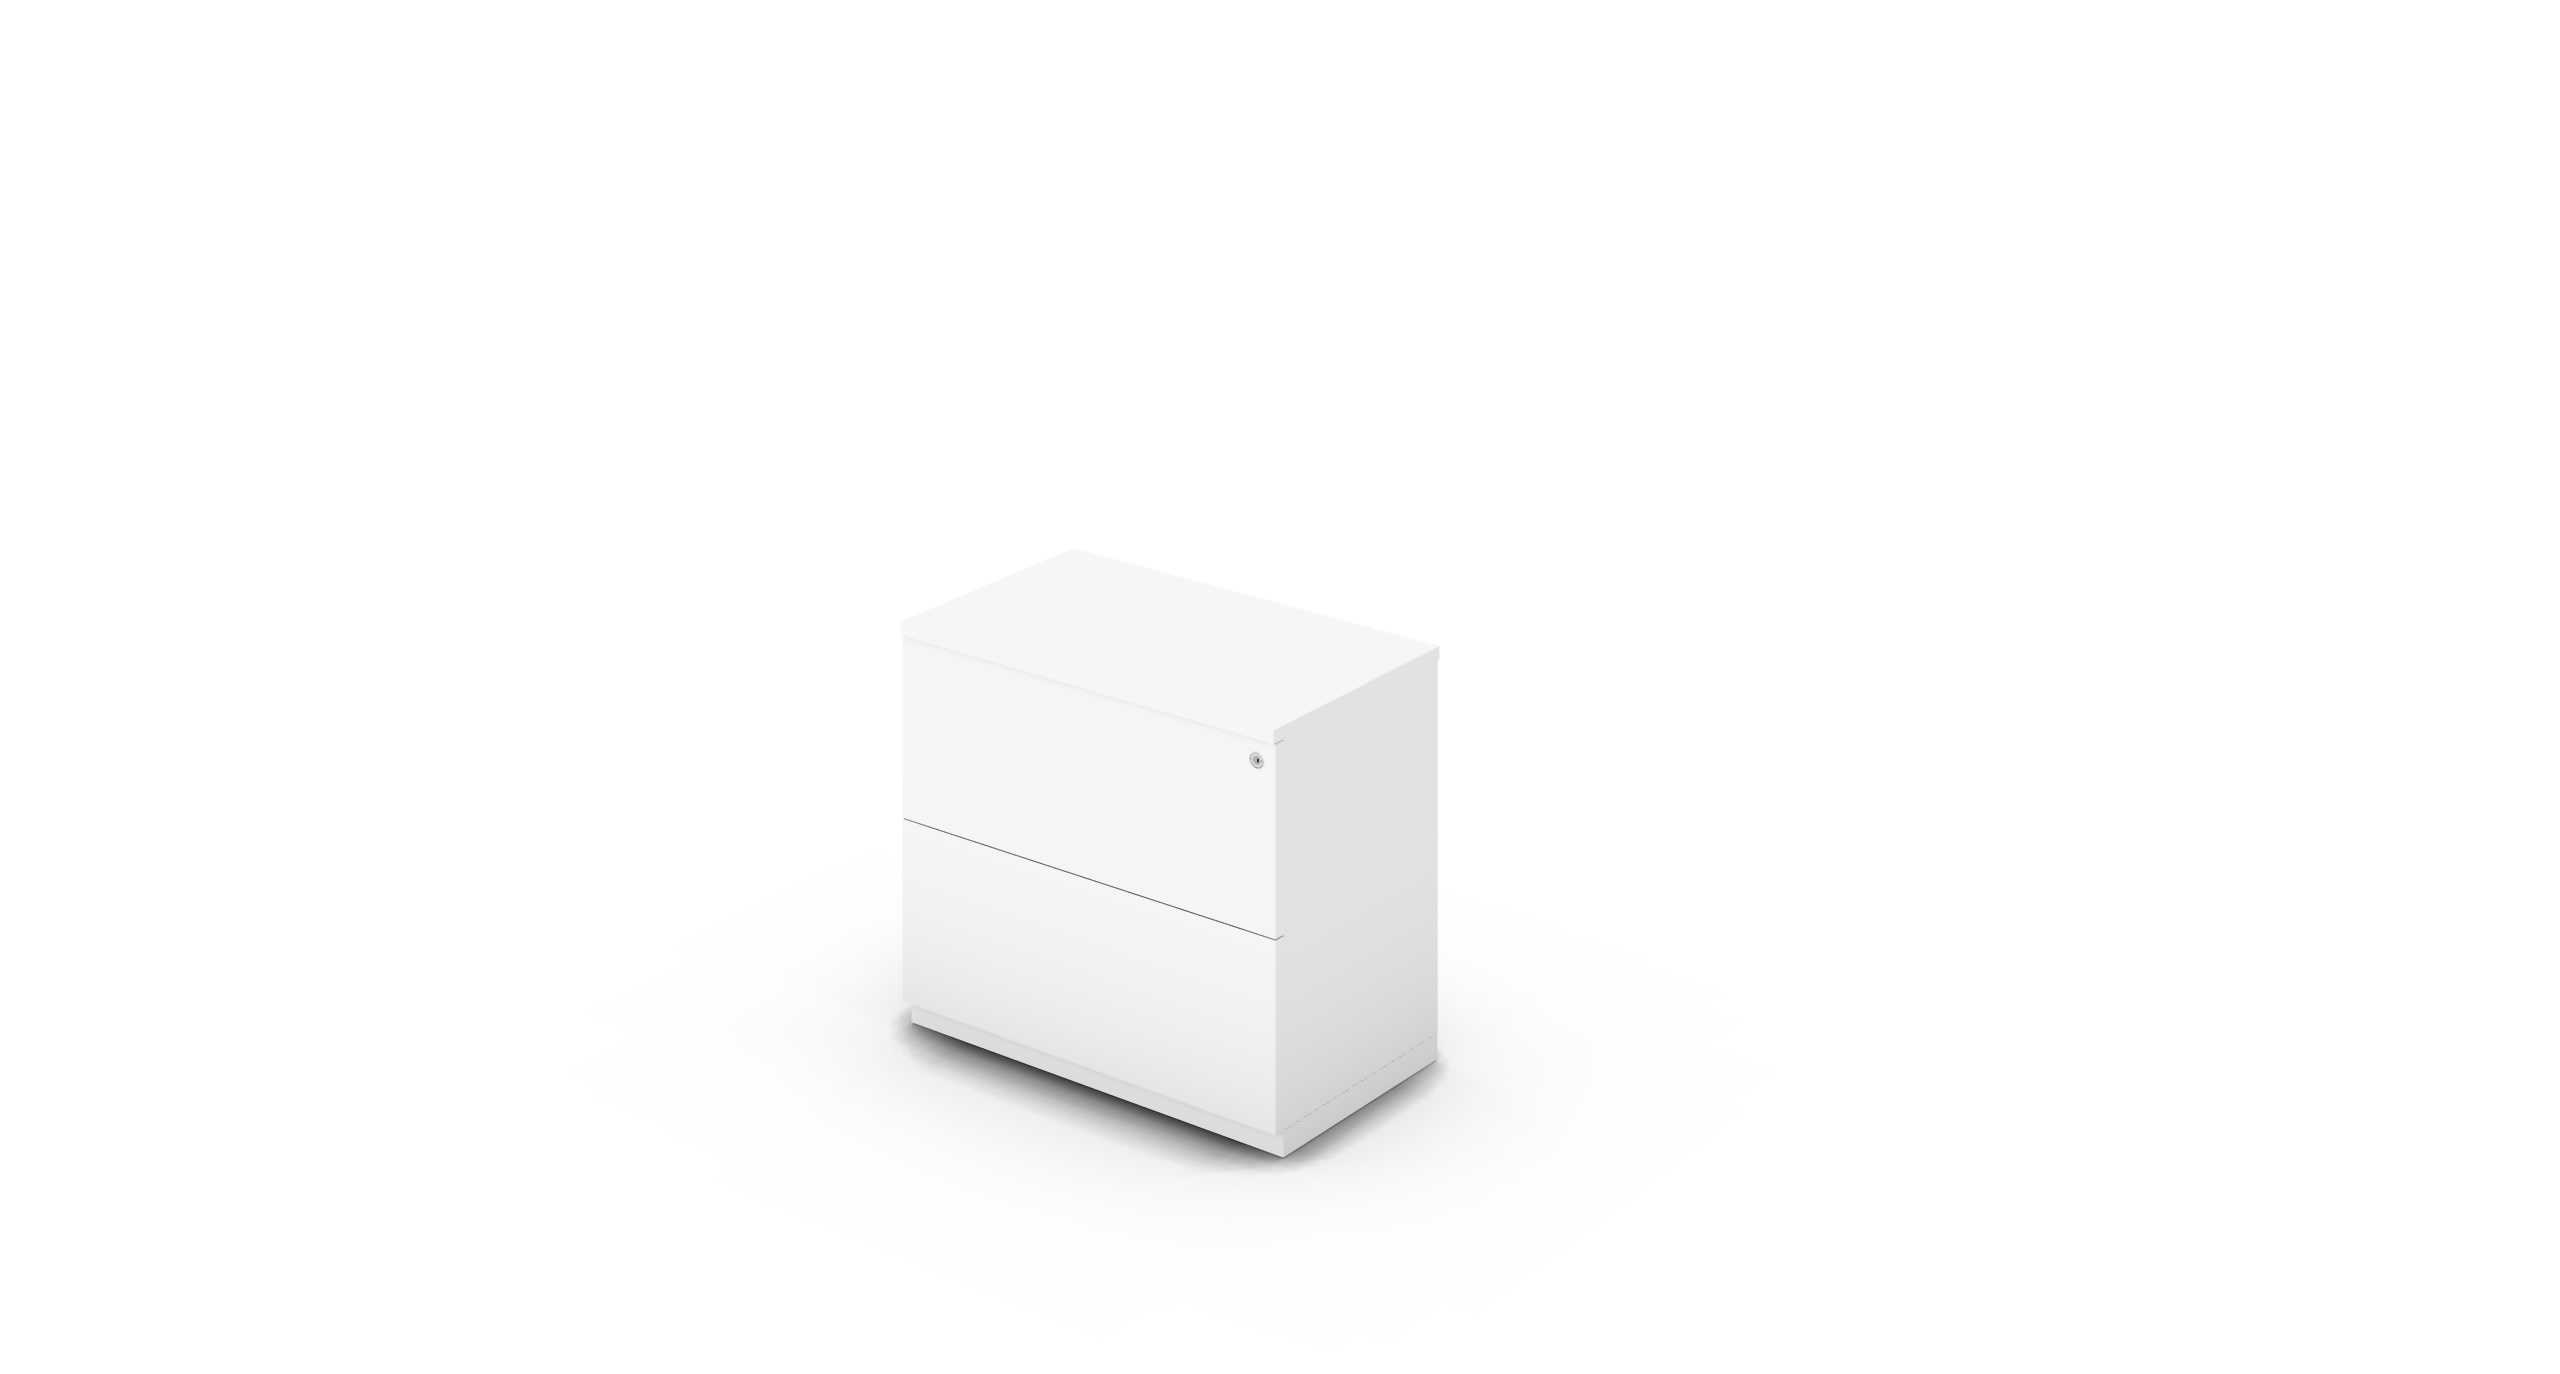 Cabinet_800x450x775_DR_White_Push_WithCylinder